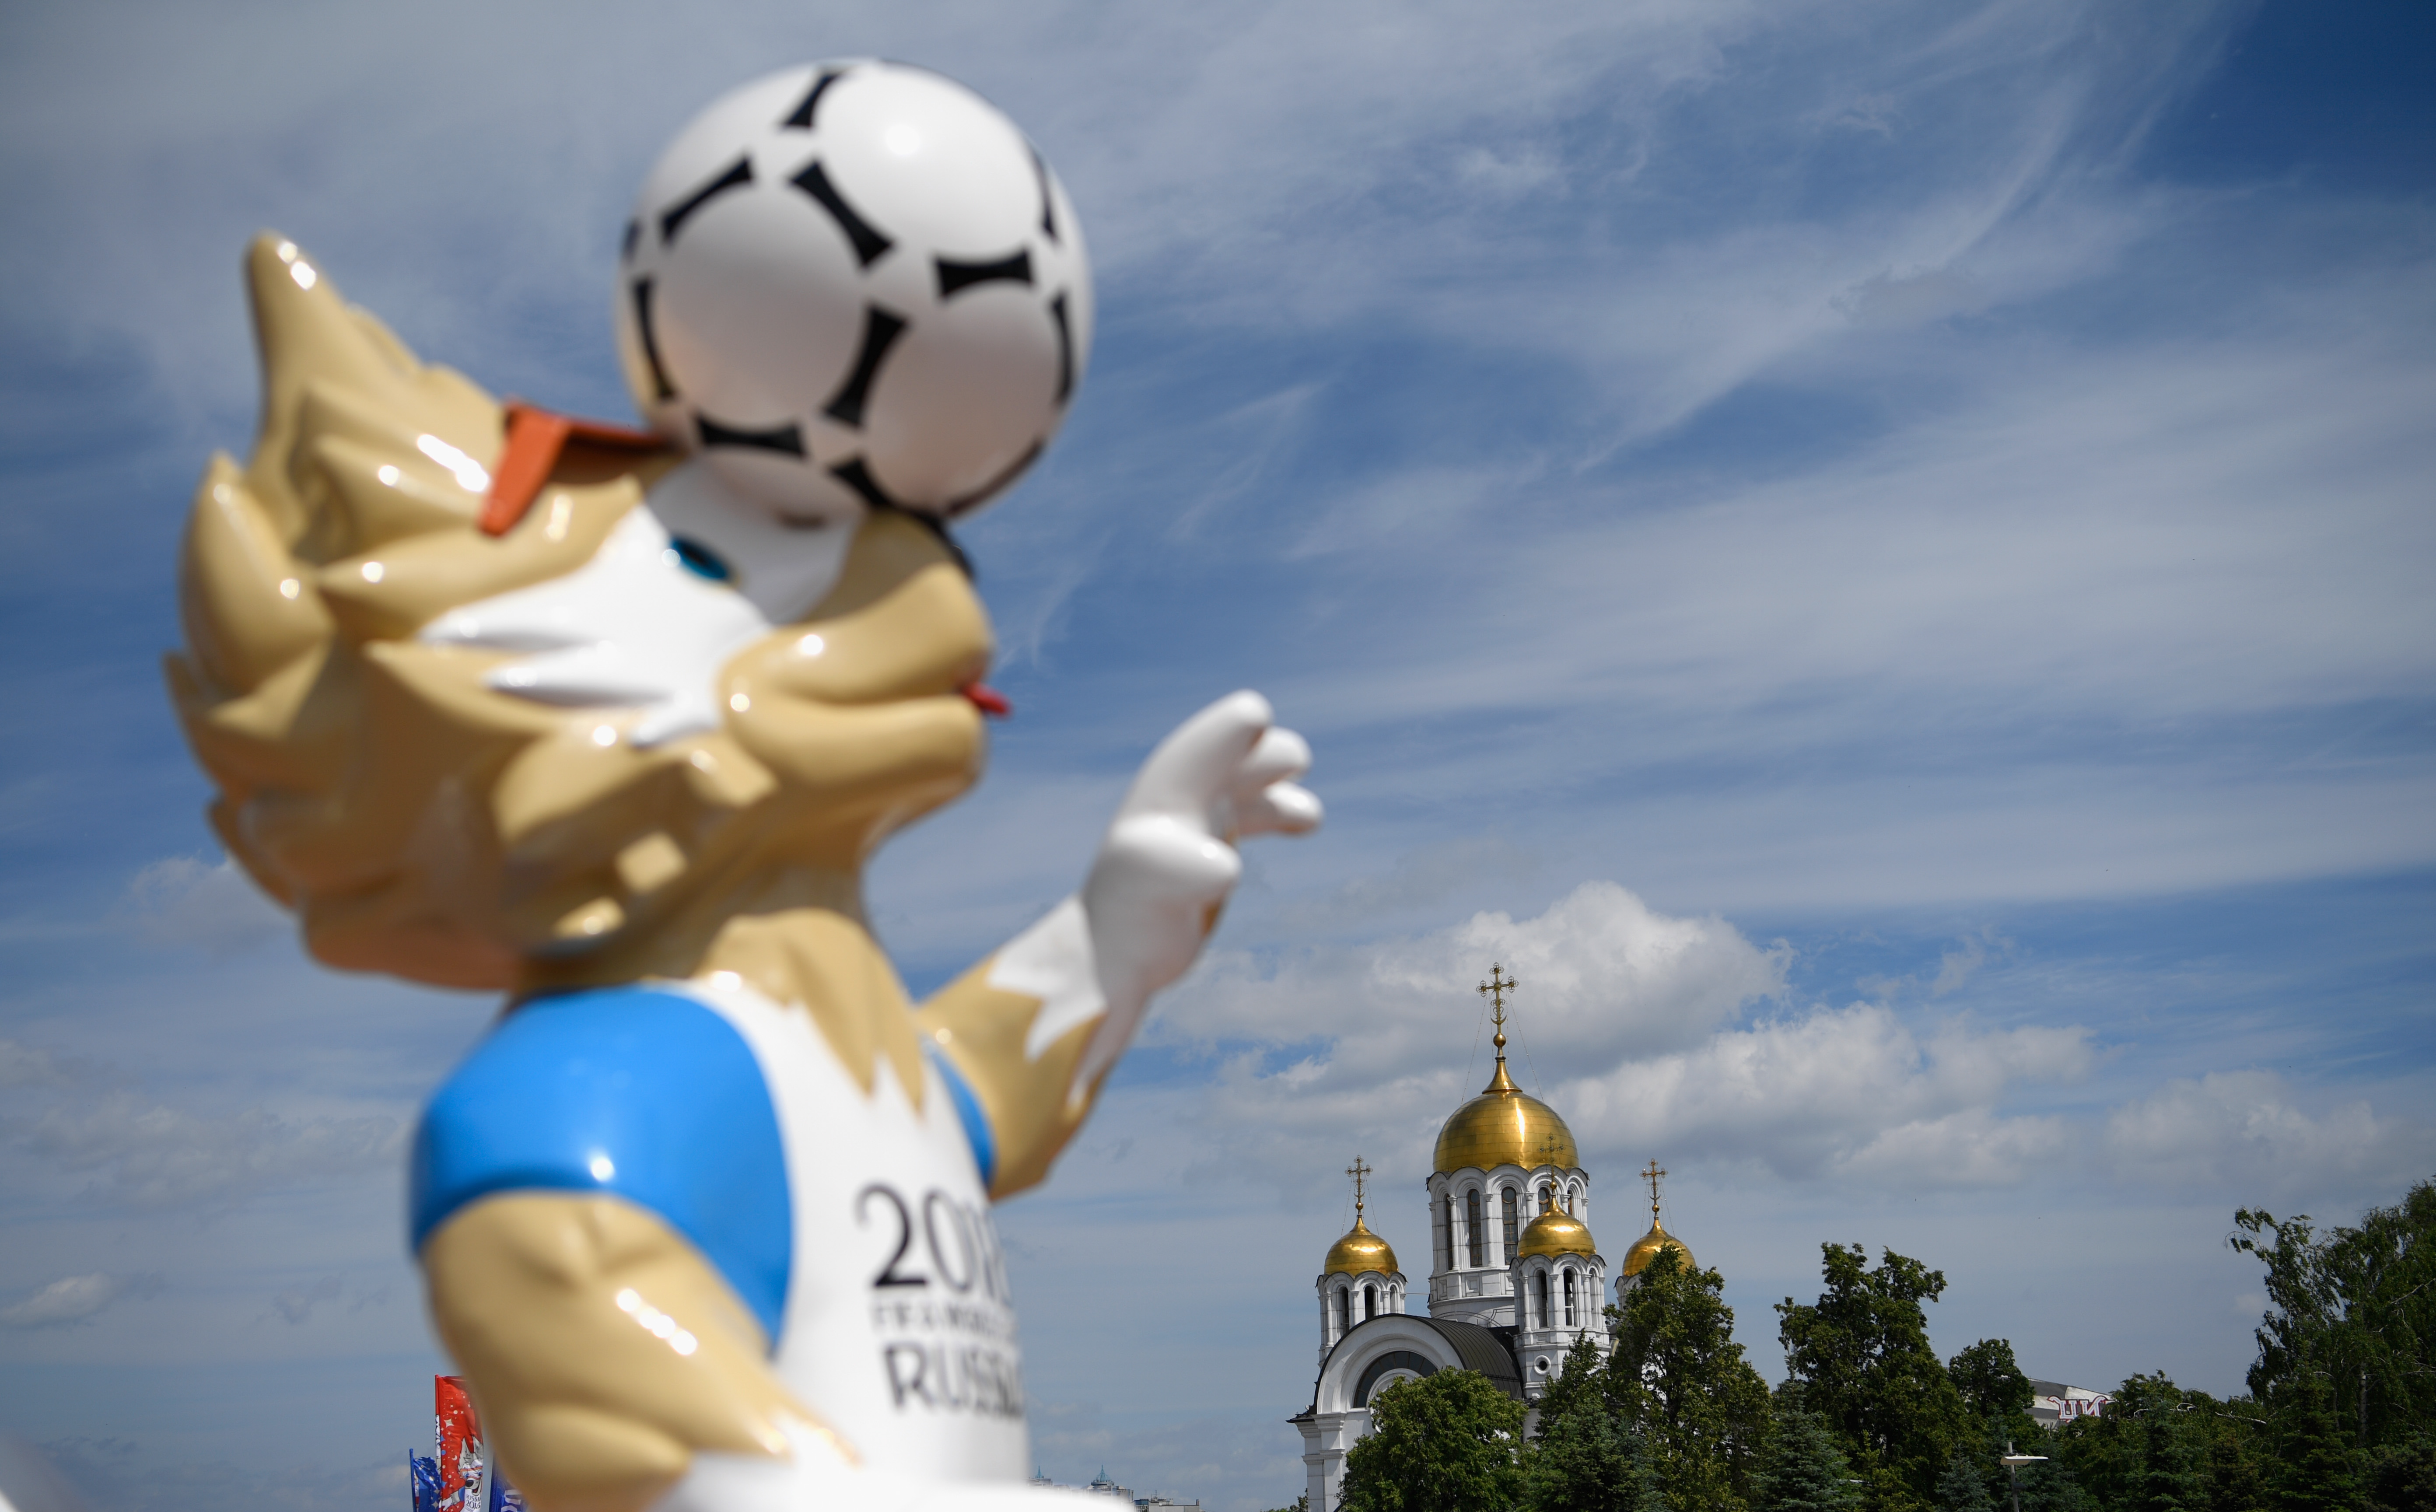 Previews ahead of 2018 FIFA World Cup Russia